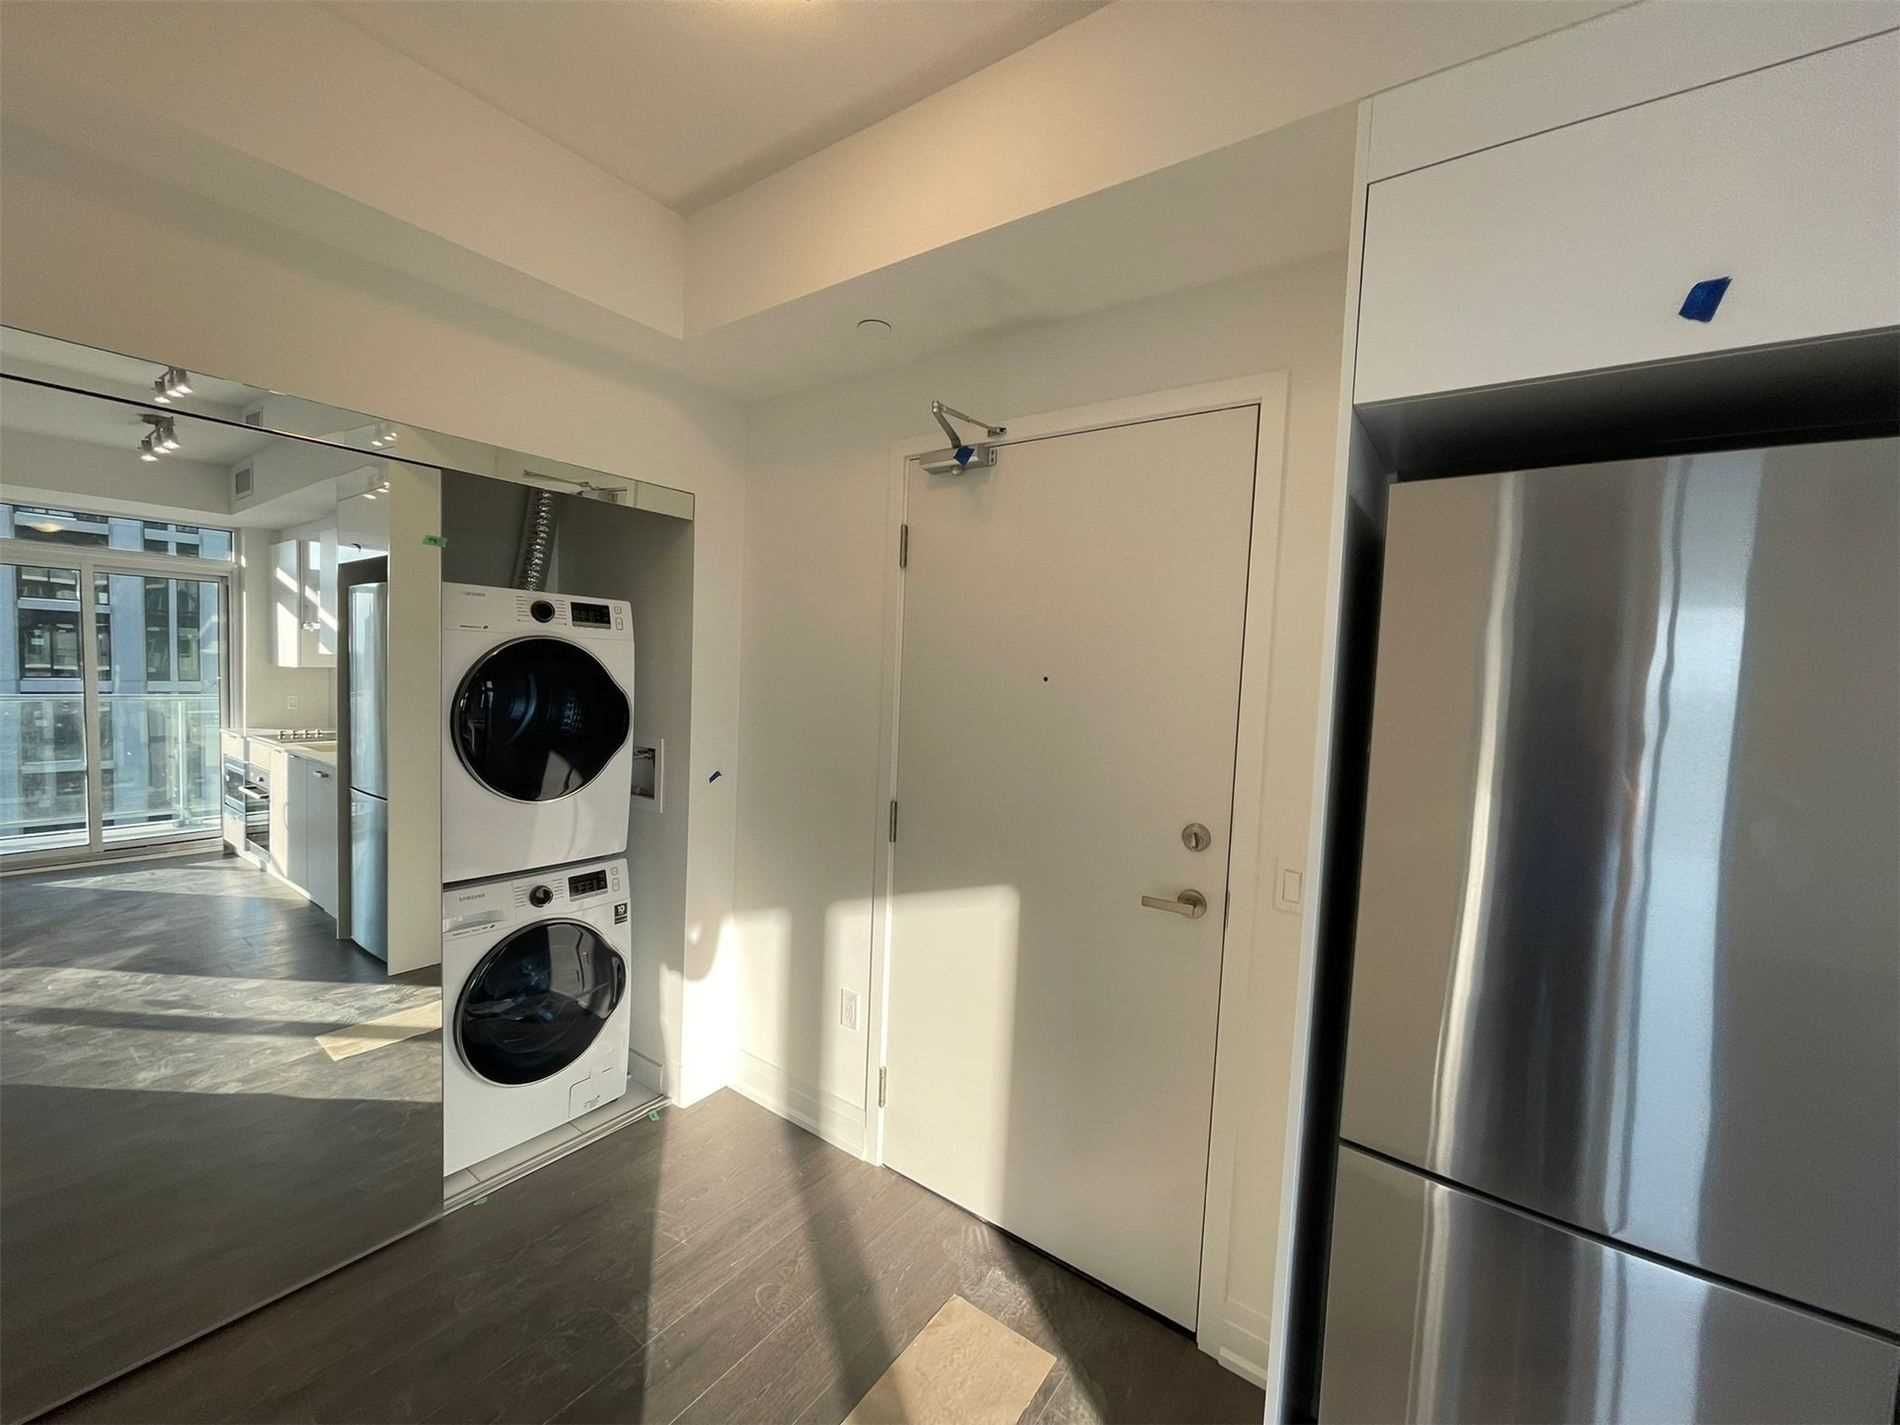 99 Broadway Ave, unit 1810 Nt for rent in Toronto - image #2